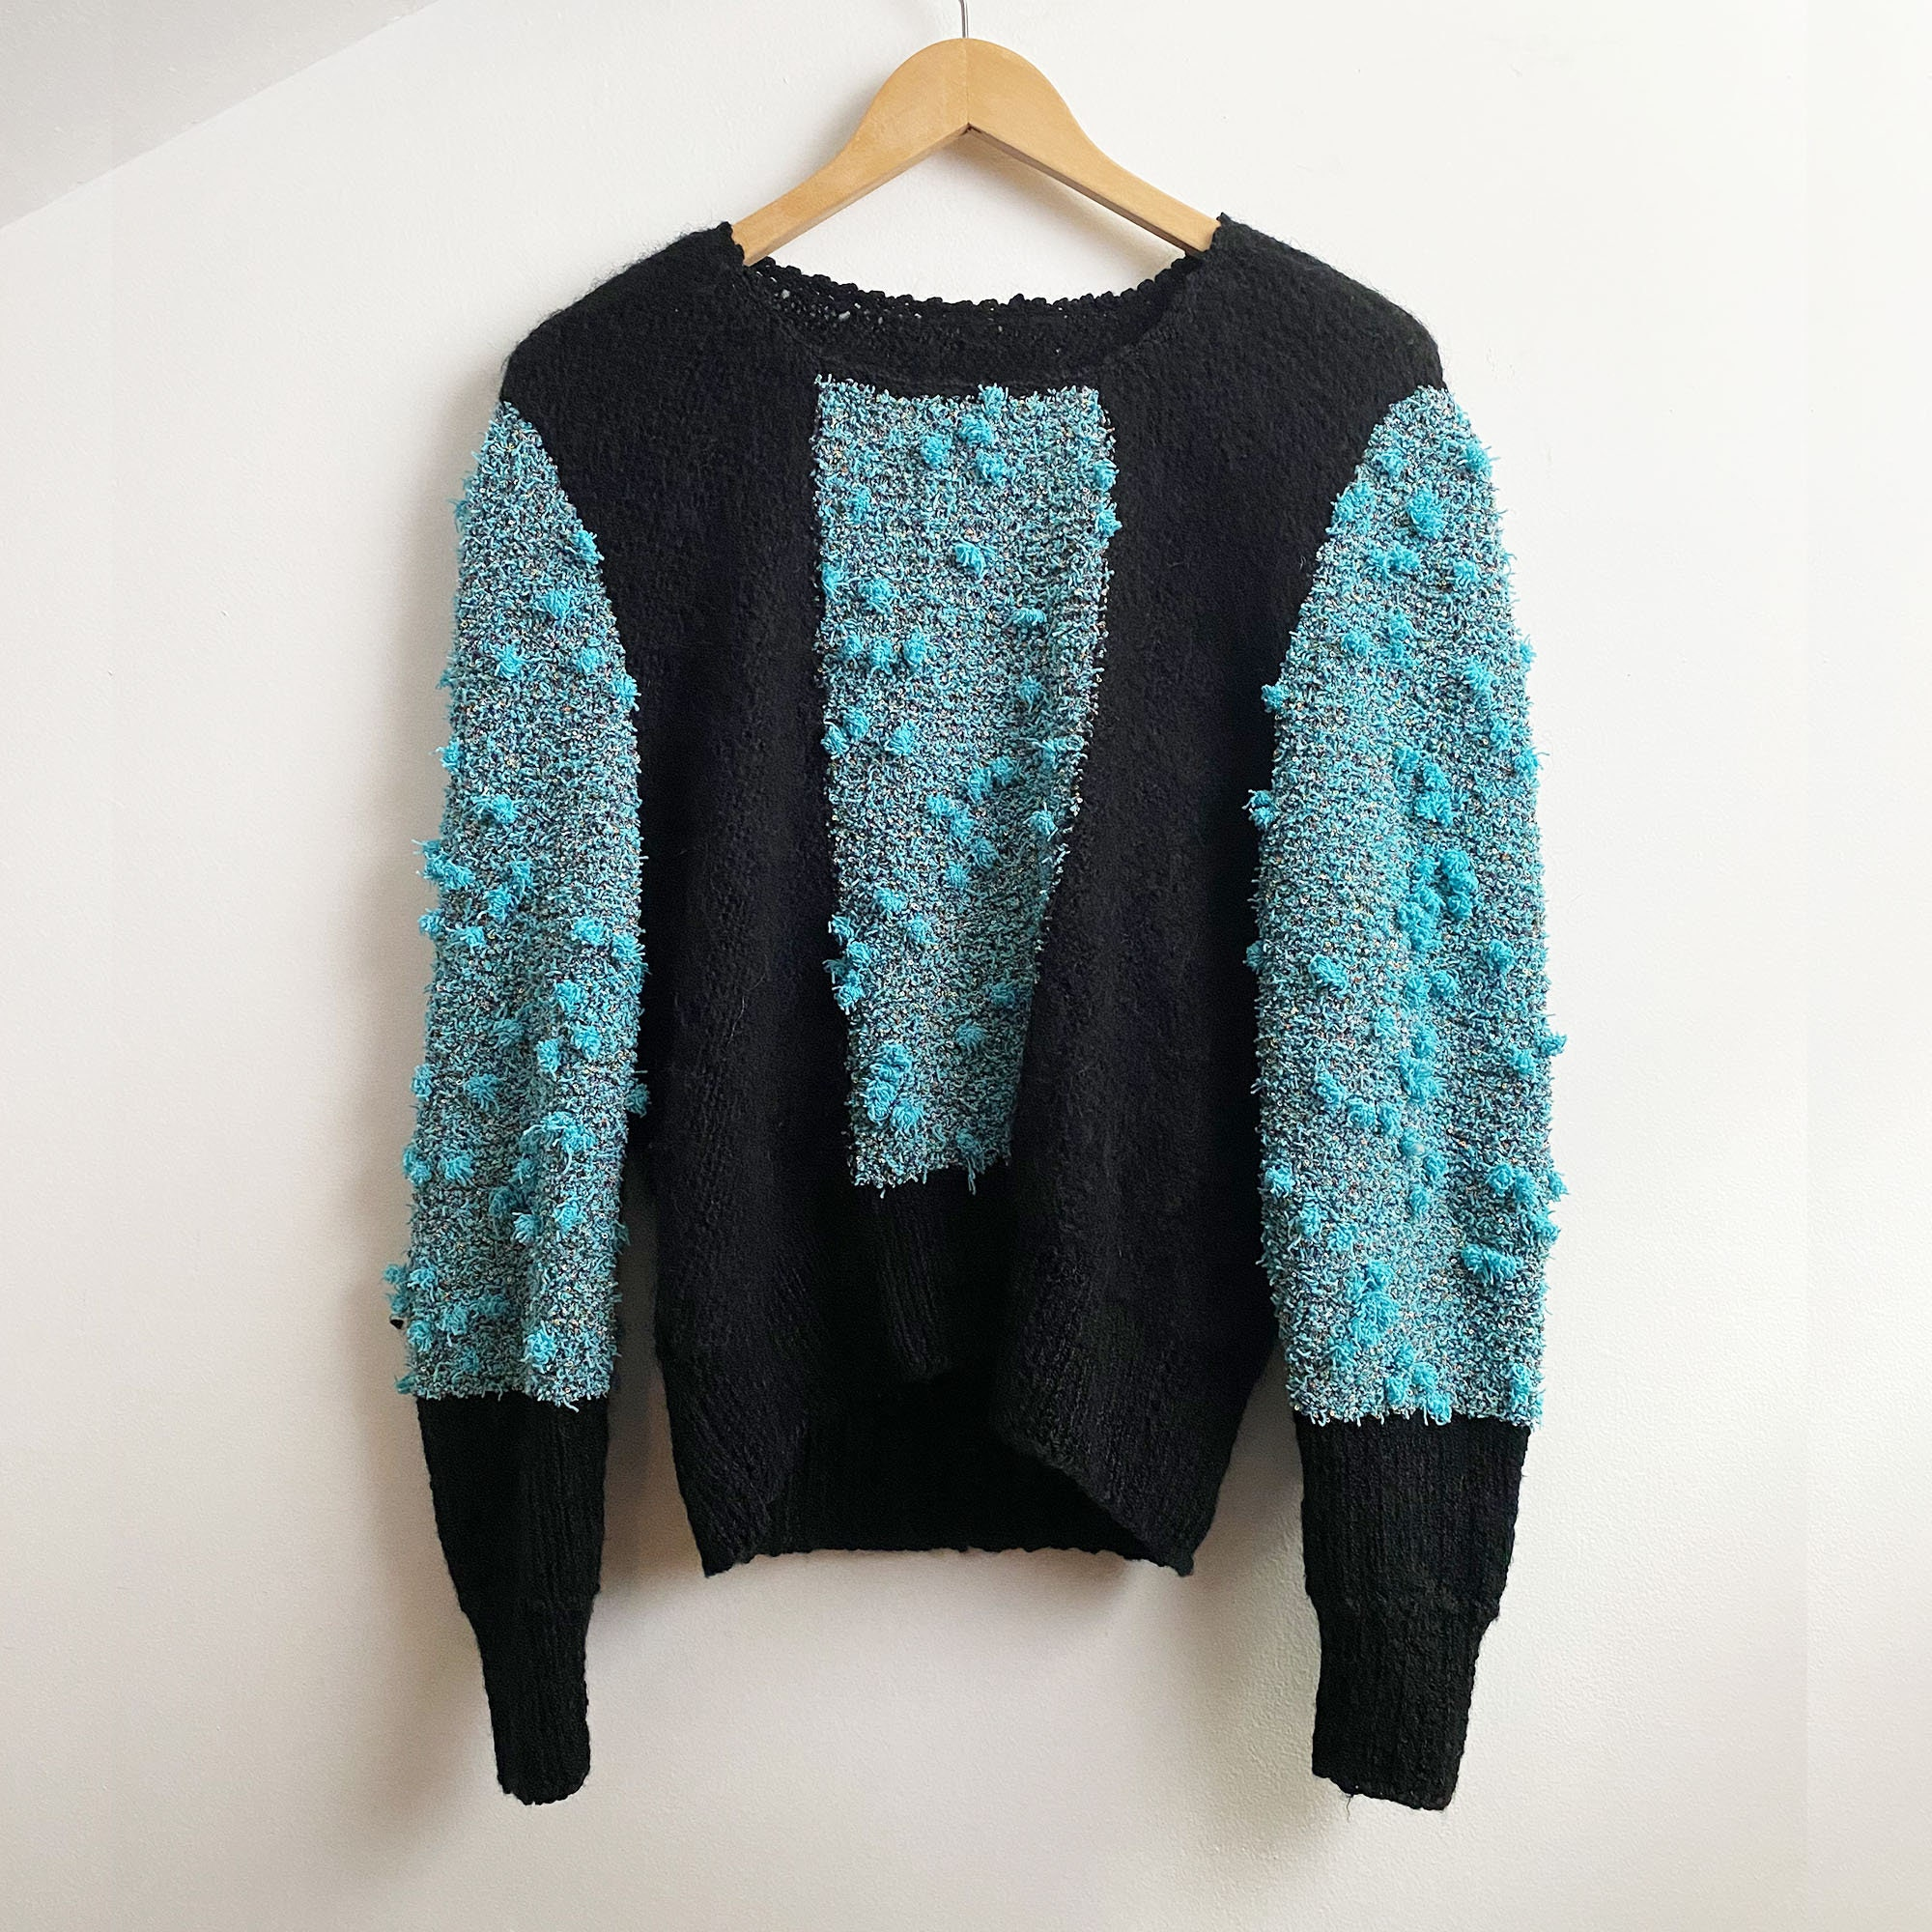 80s Sweatshirts, Sweaters, Vests | Women 1980S Hand Knit Wool Mohair Sweater - Nubby Black  Turquoise Bauble Jumper $125.00 AT vintagedancer.com